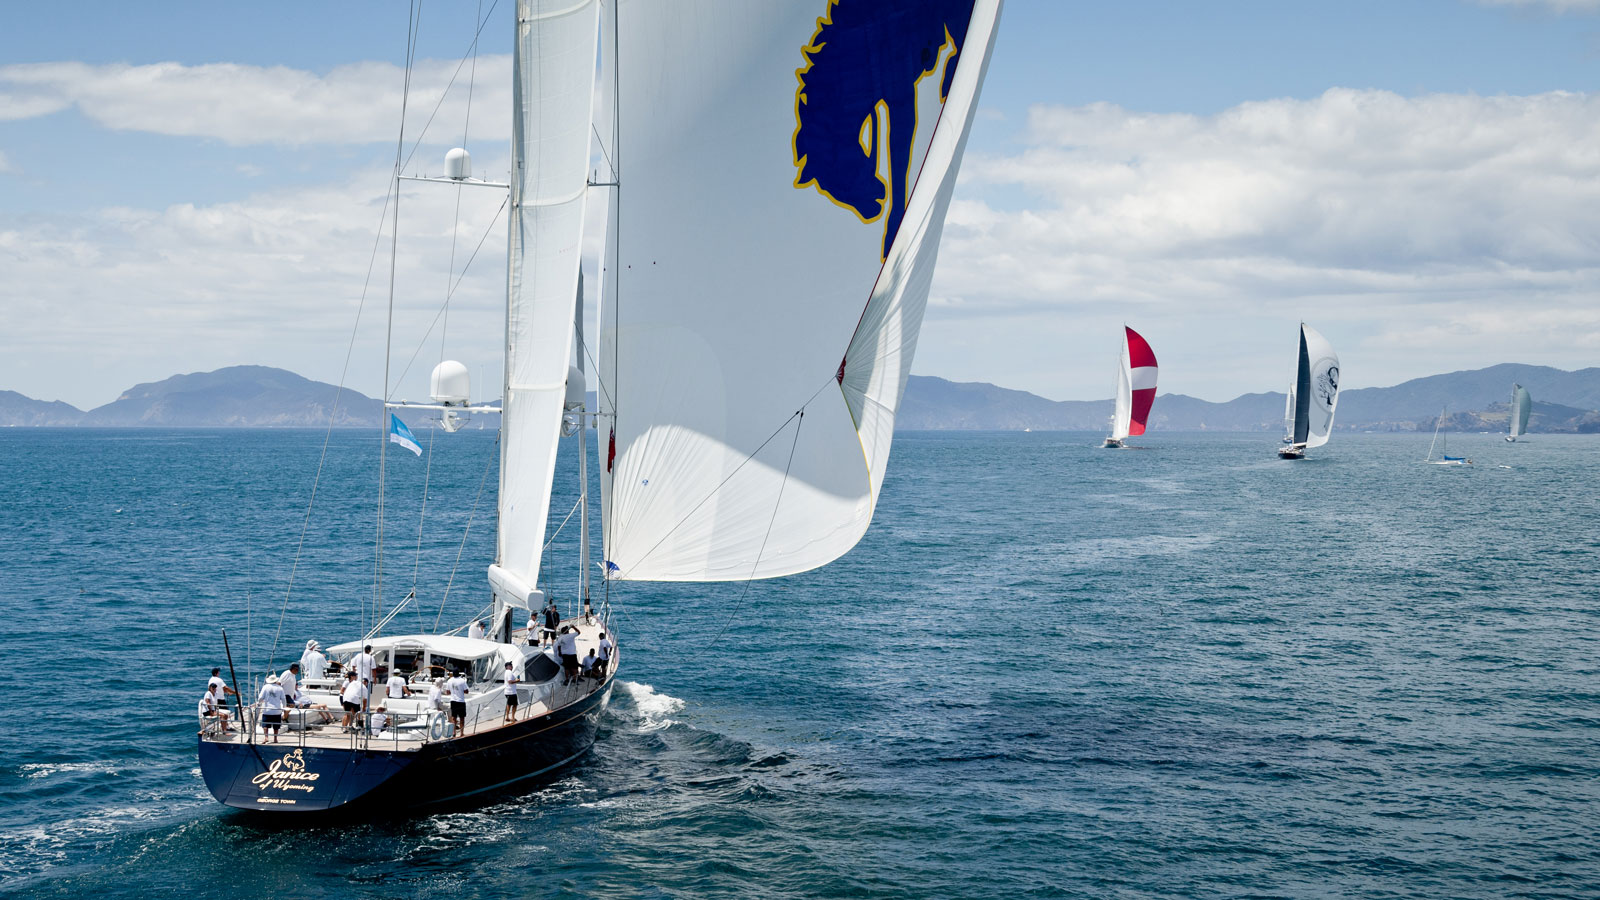 yachts-racing-new-zealand-millennium-cup-2021-janice-of-wyoming